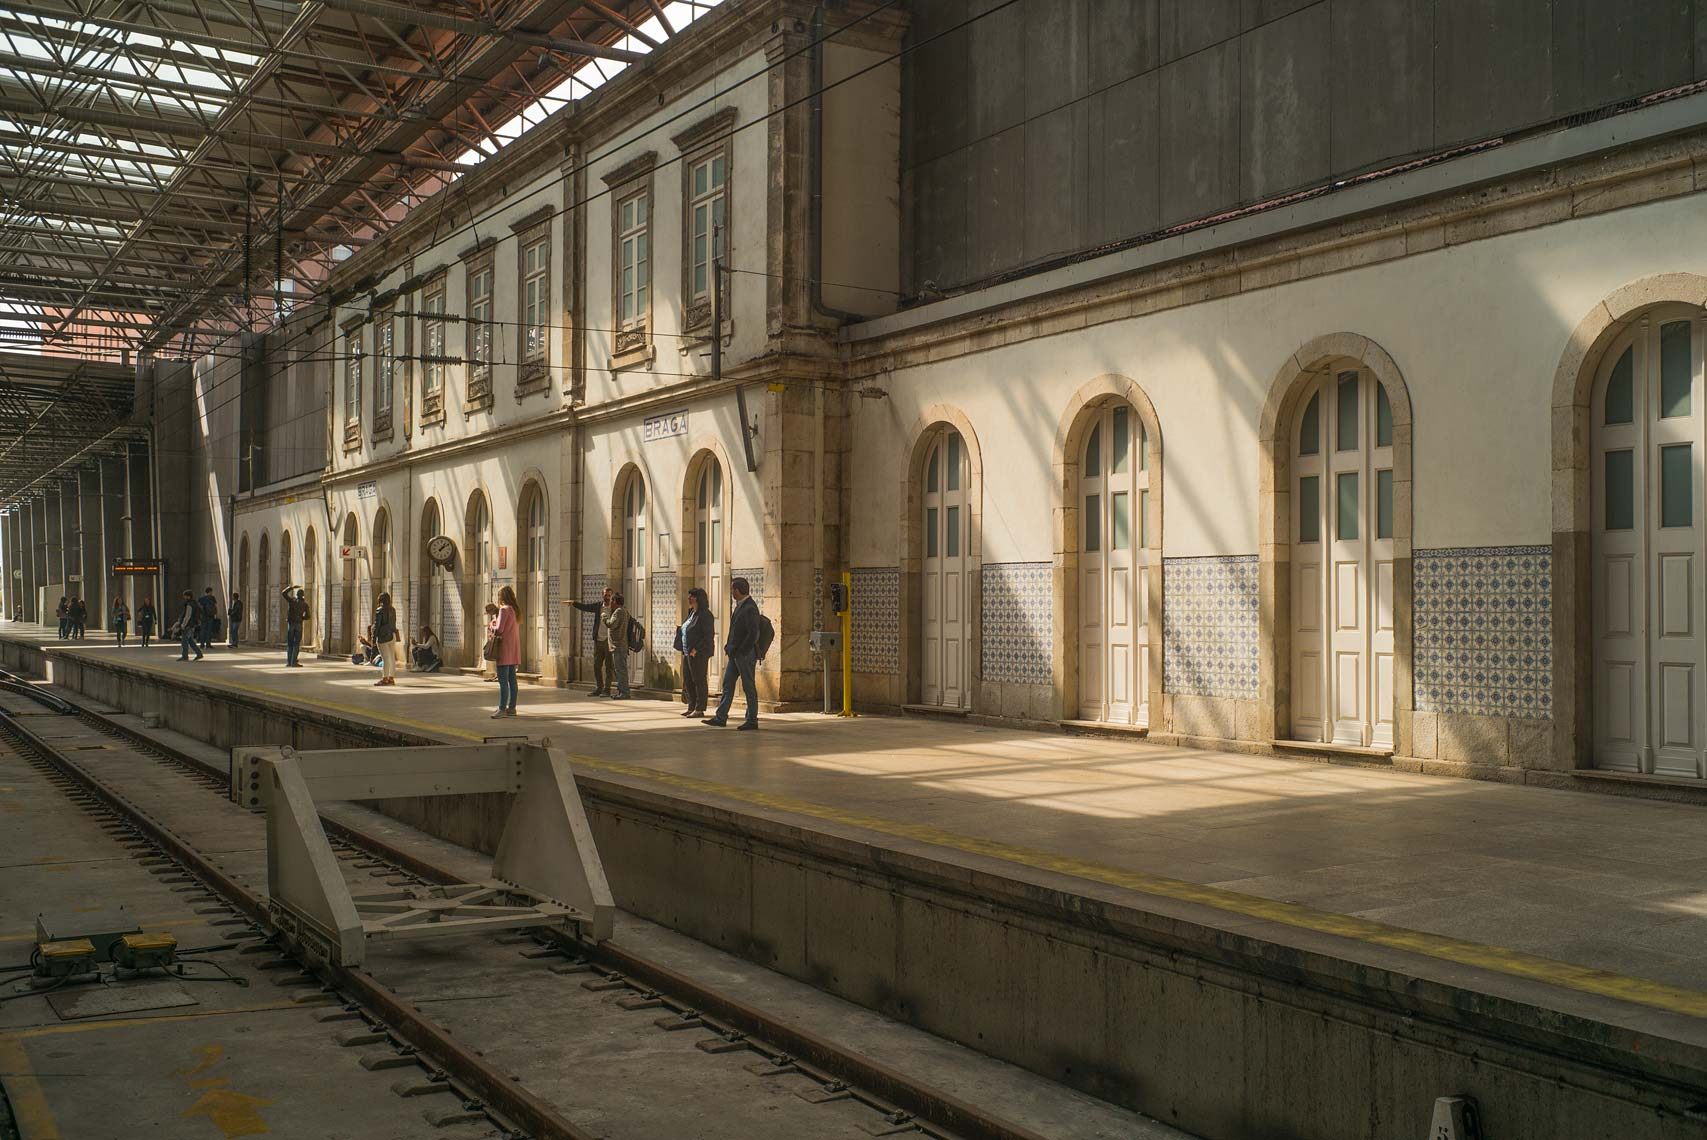 Small-crowd-of-people-on-Braga-RR-station-copy